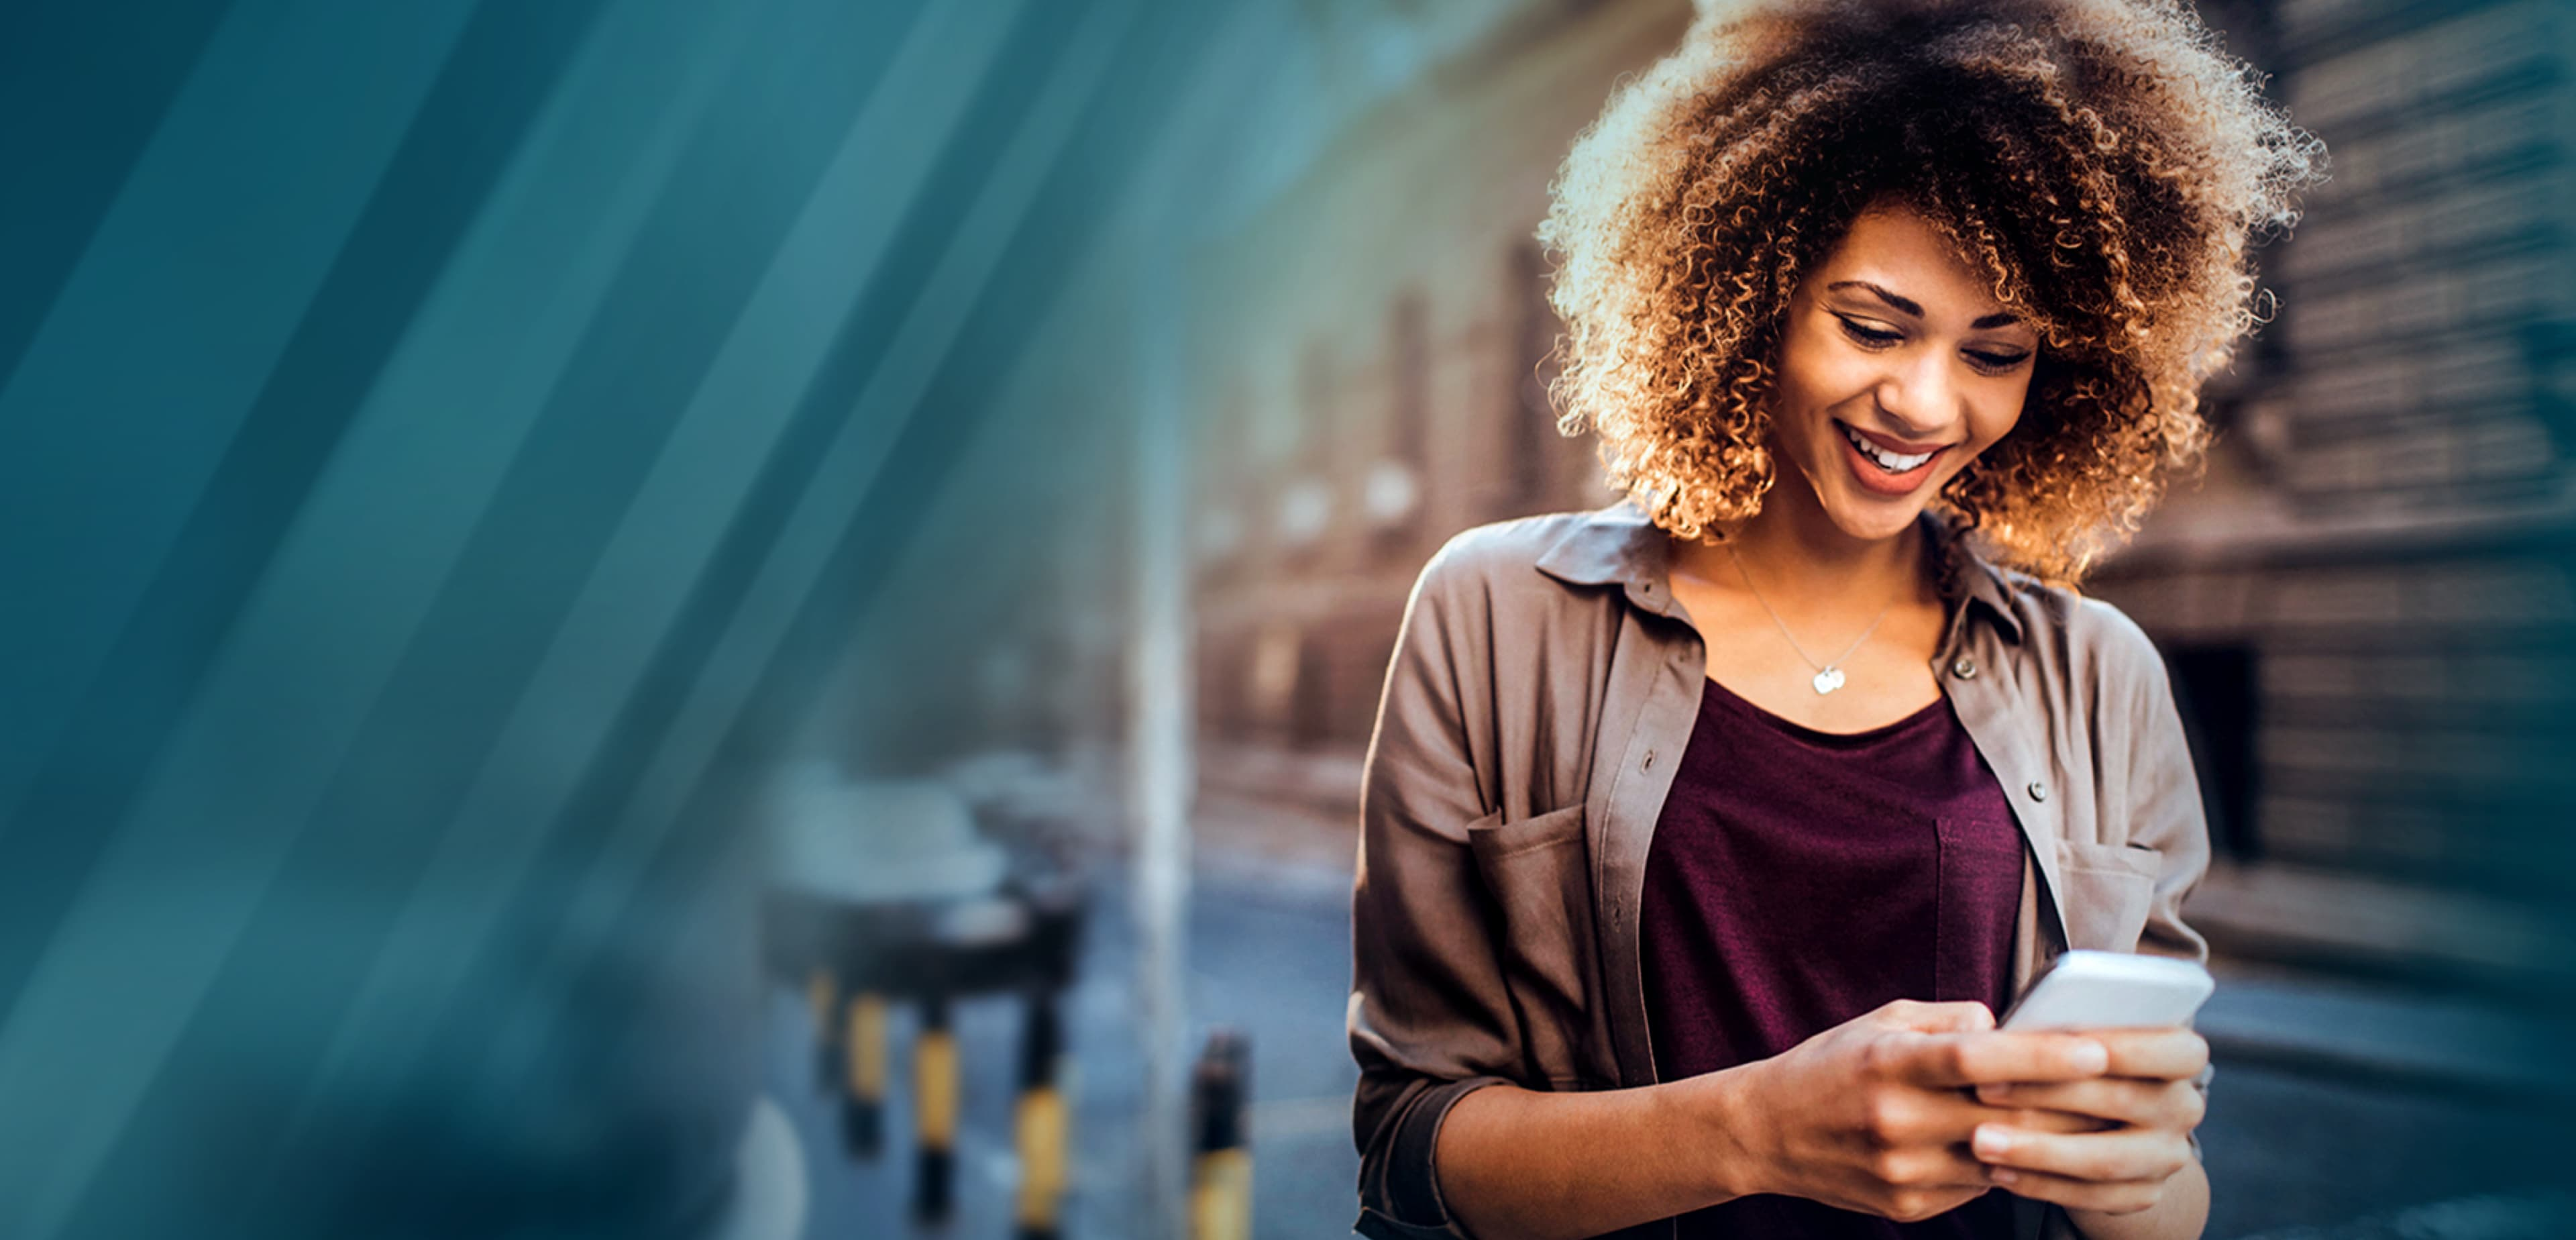 Speed Queen Insights retains existing customers and attracts new customers with Speed Queen Rewards.